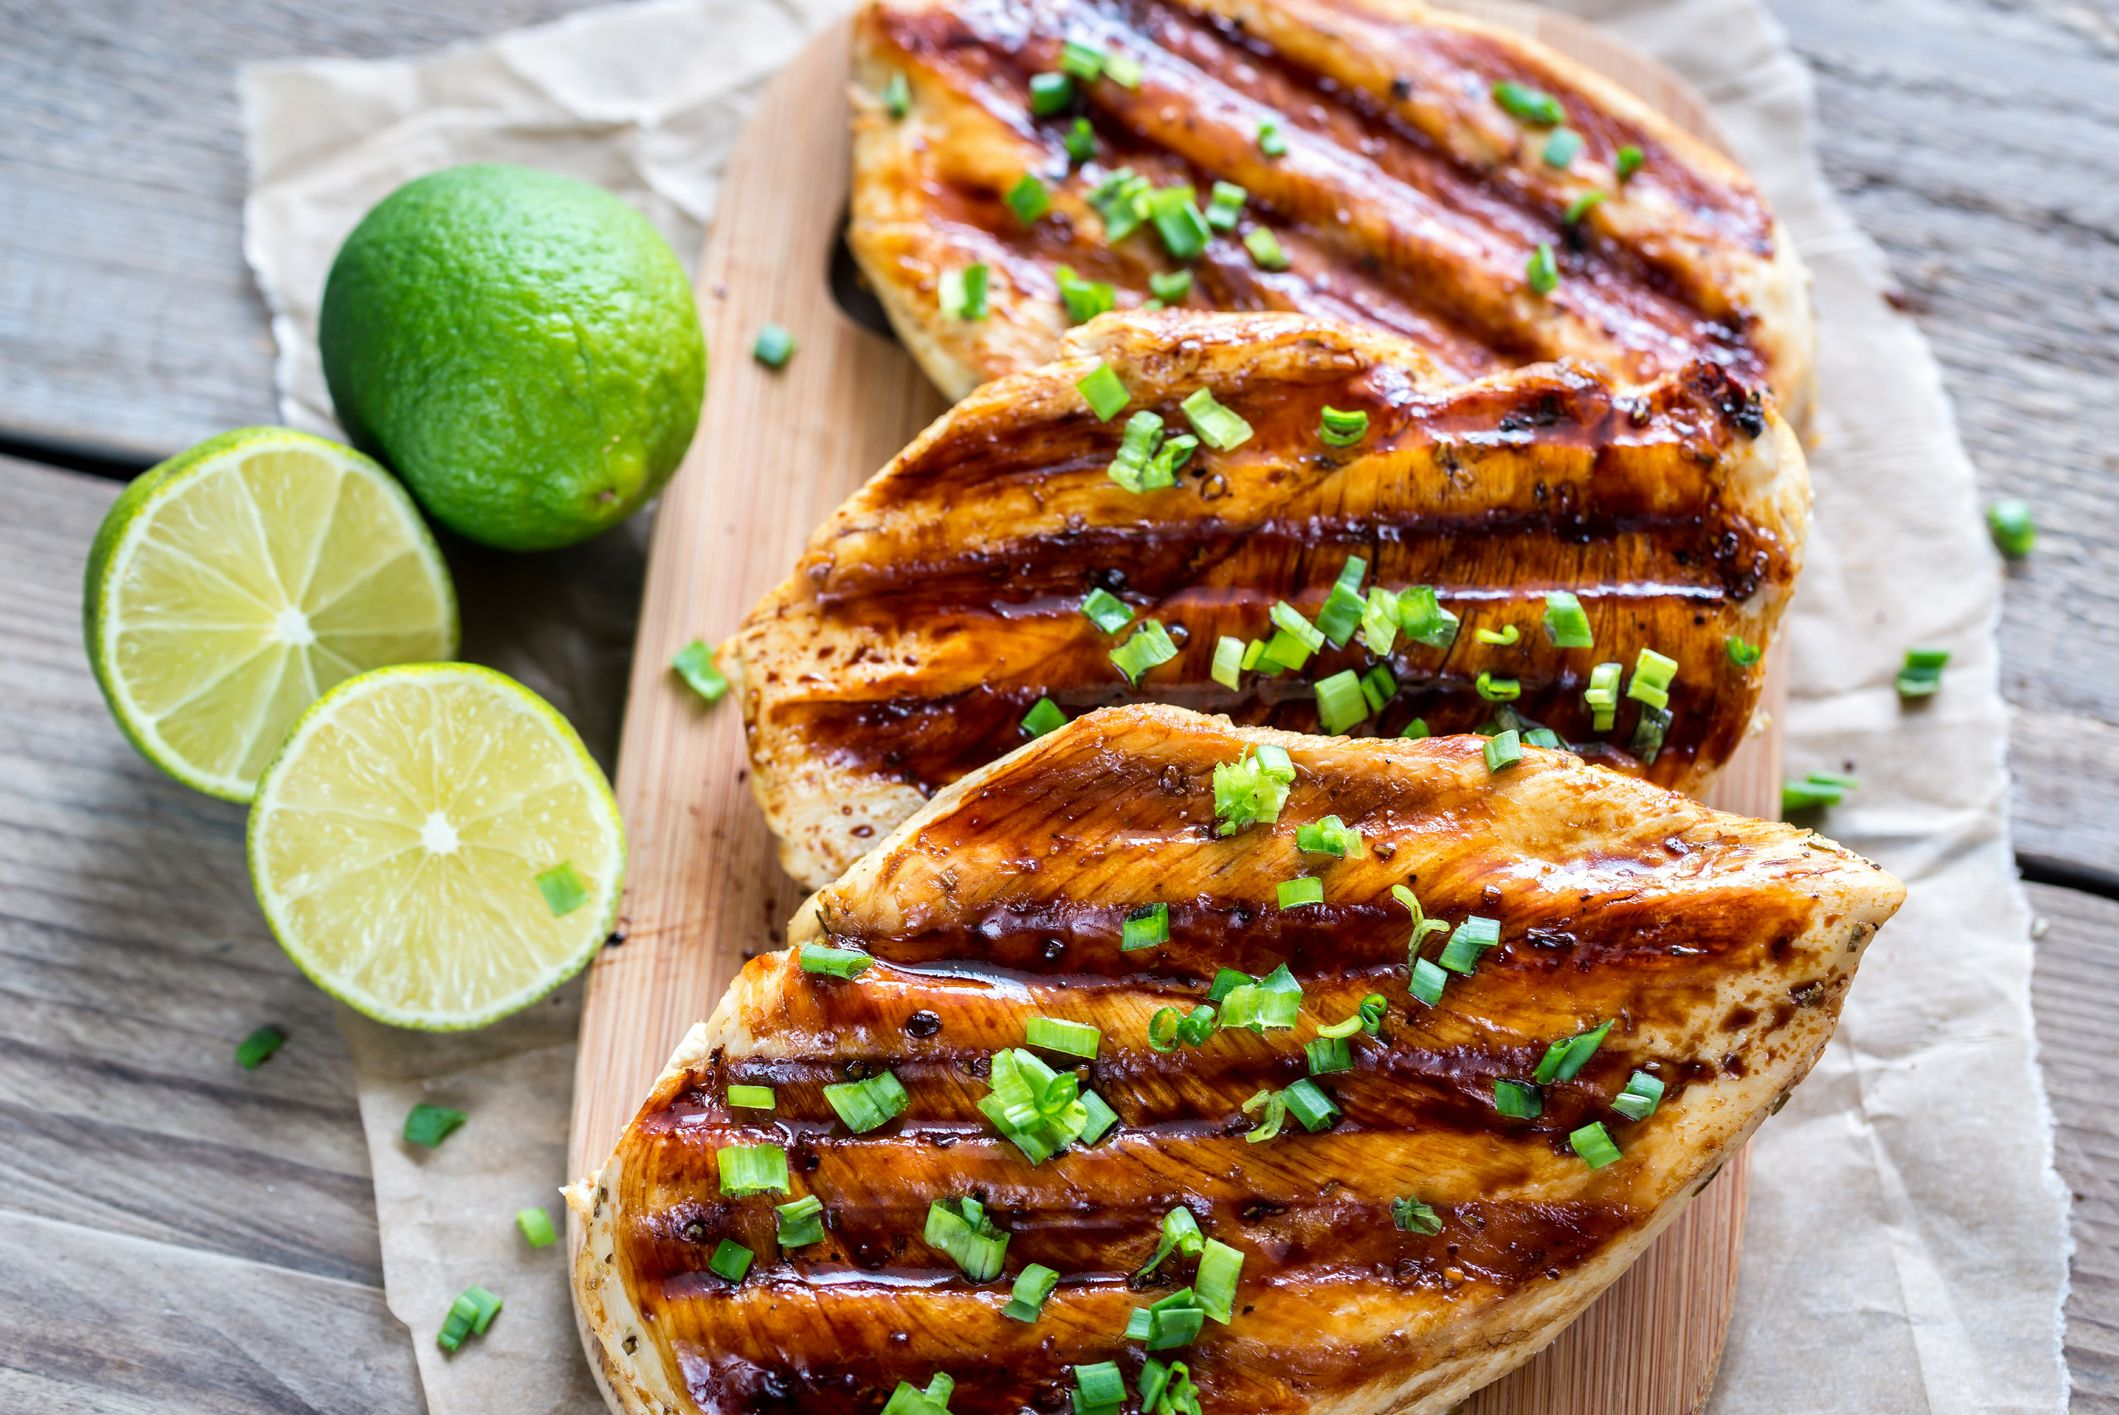 How Many Calories Are In Chicken Breast Chicken Breast Nutrition